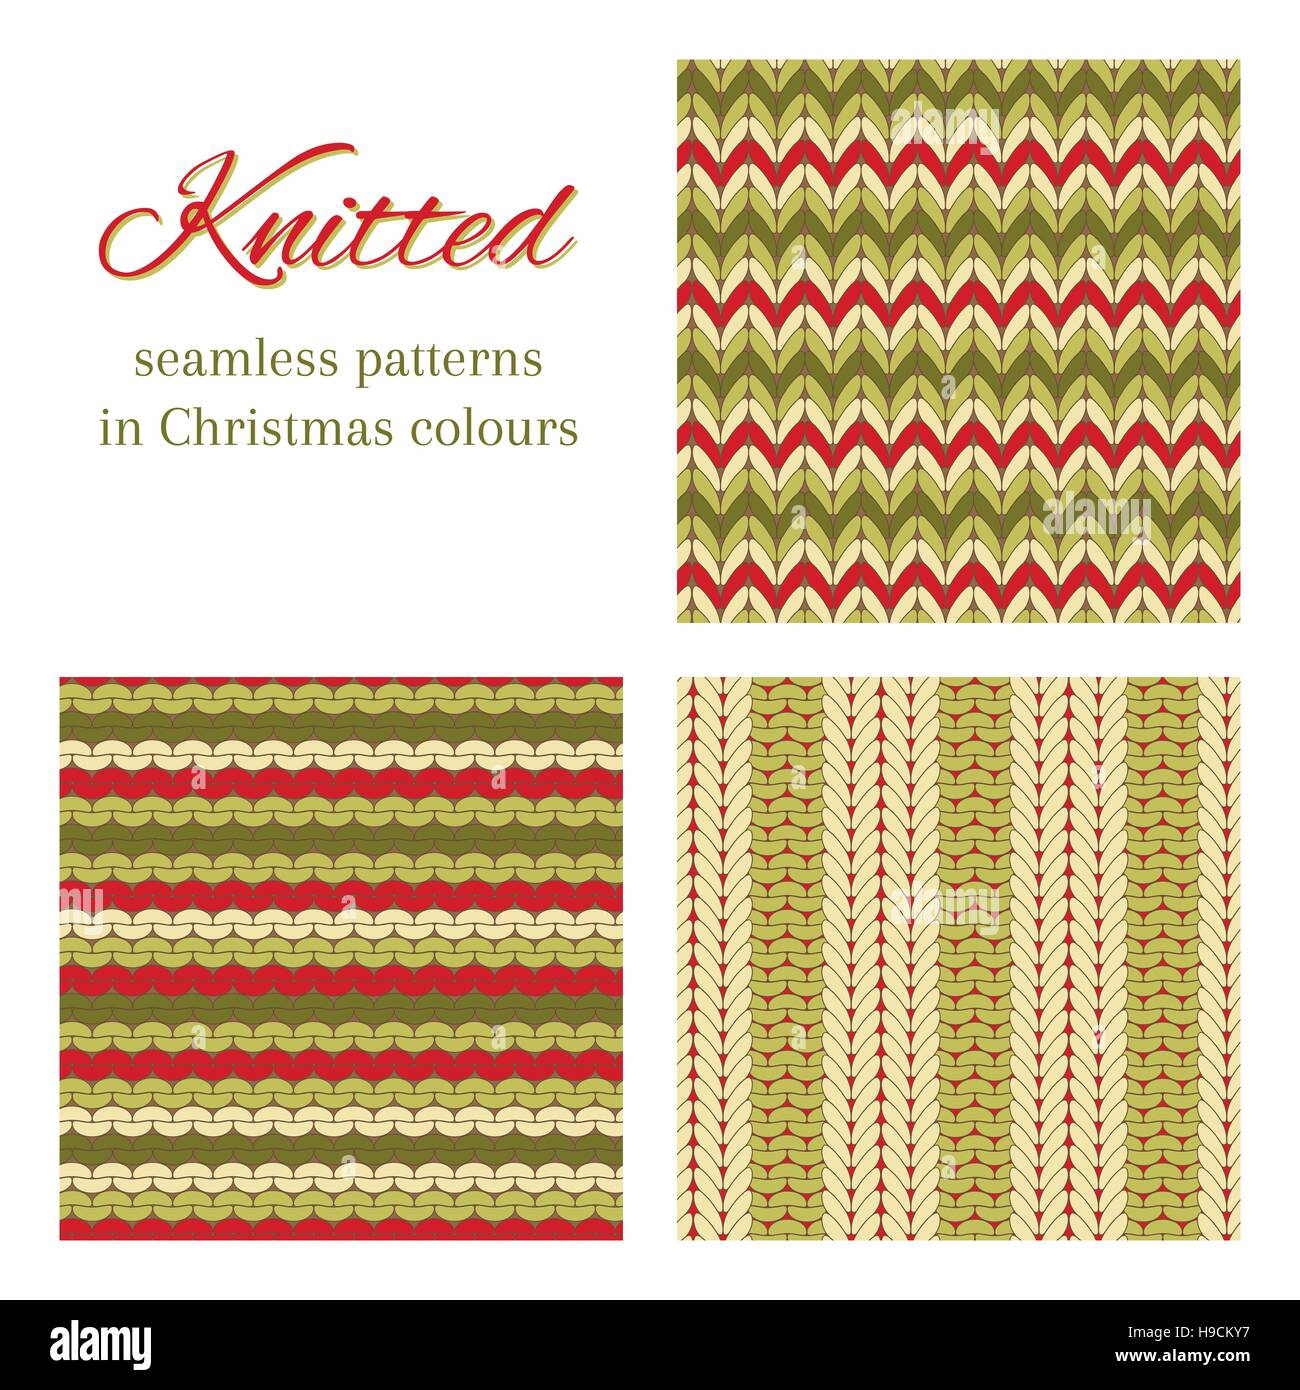 3dc4c6329 Set of vector seamless patterns imitating basic knitted fabrics. Abstract  vector backgrounds in Christmas colours